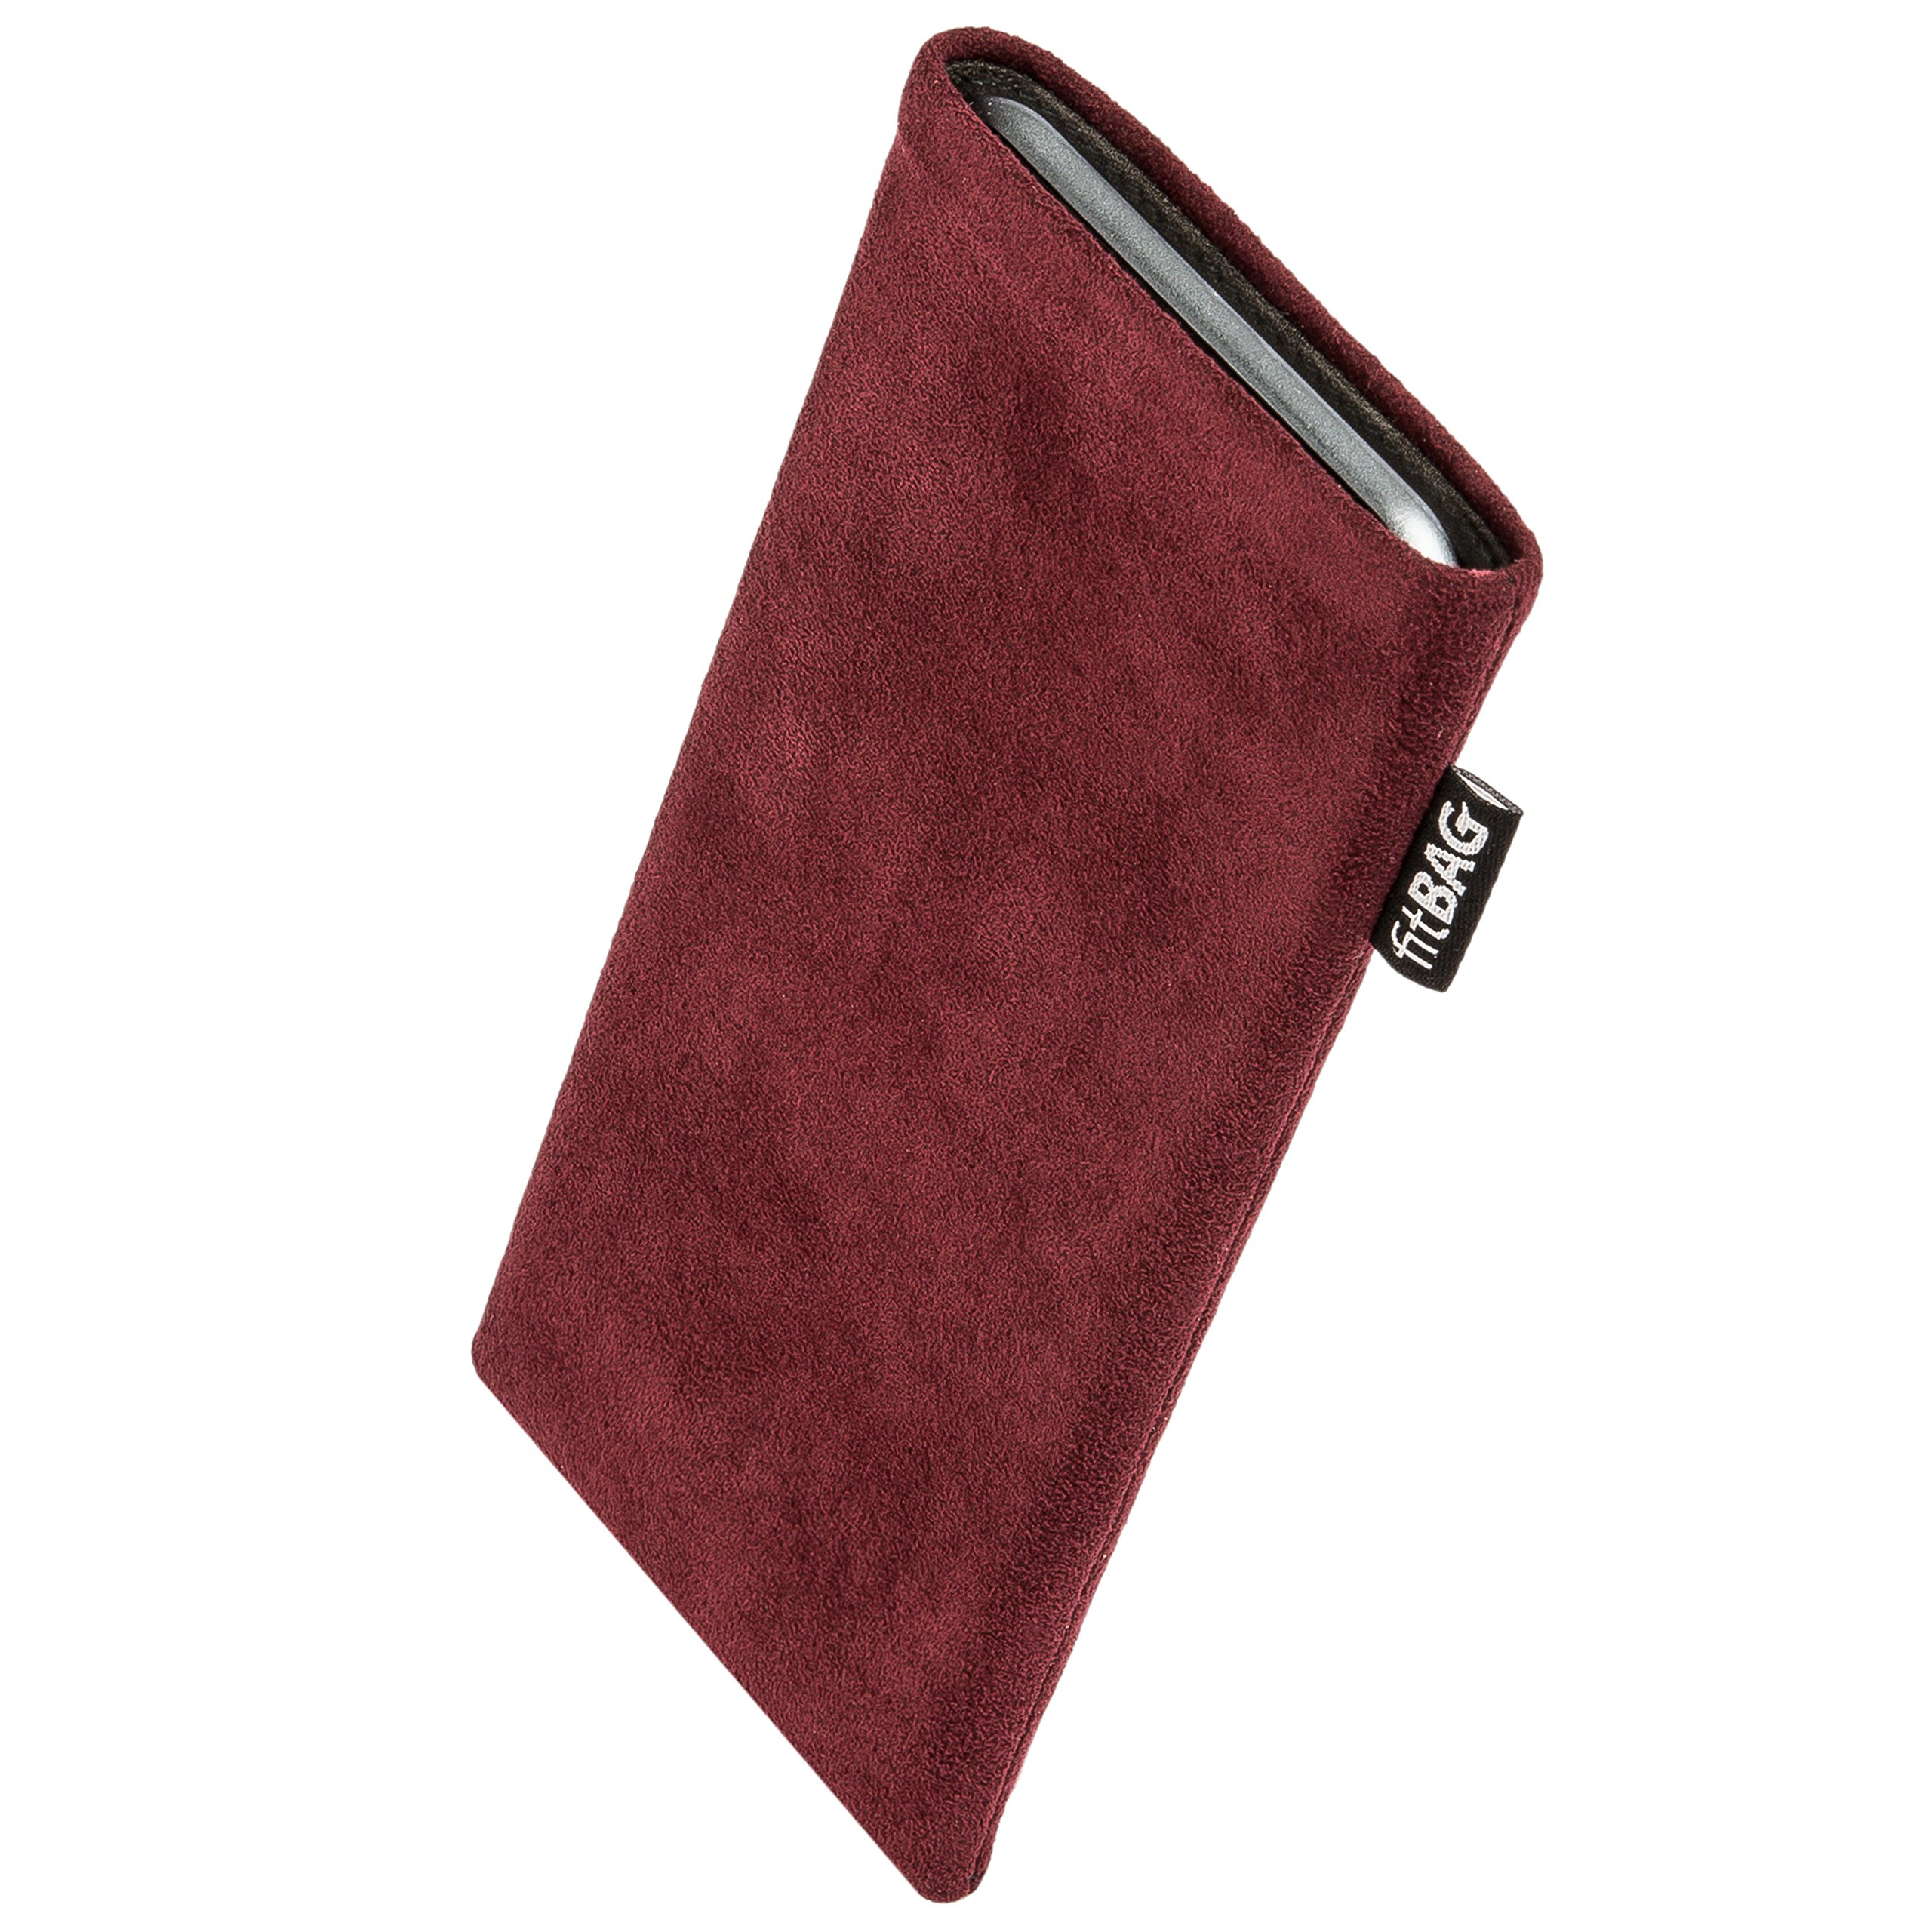 fitBAG Classic Burgundy Custom Tailored Sleeve for Nokia 9 PureView (2019) | Made in Germany | Genuine Alcantara Pouch case Cover with Microfibre Lining for Display Cleaning